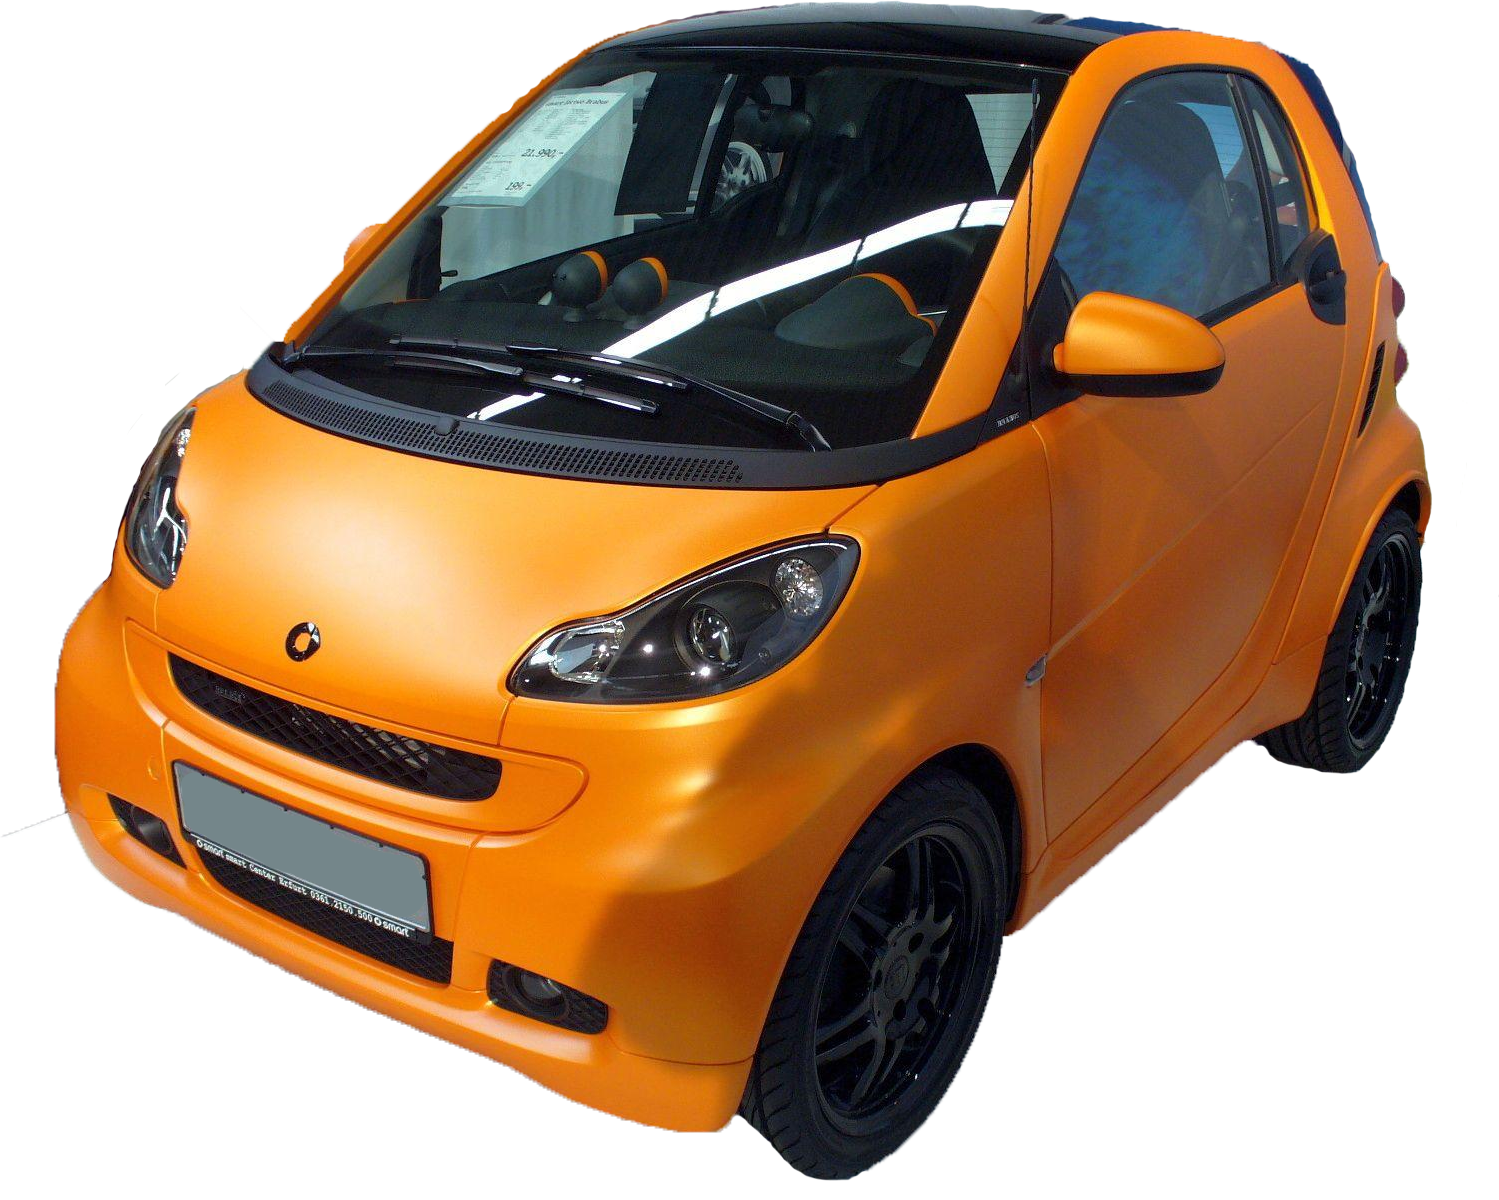 Collision coverage for 2-door micro cars relatively cheaper